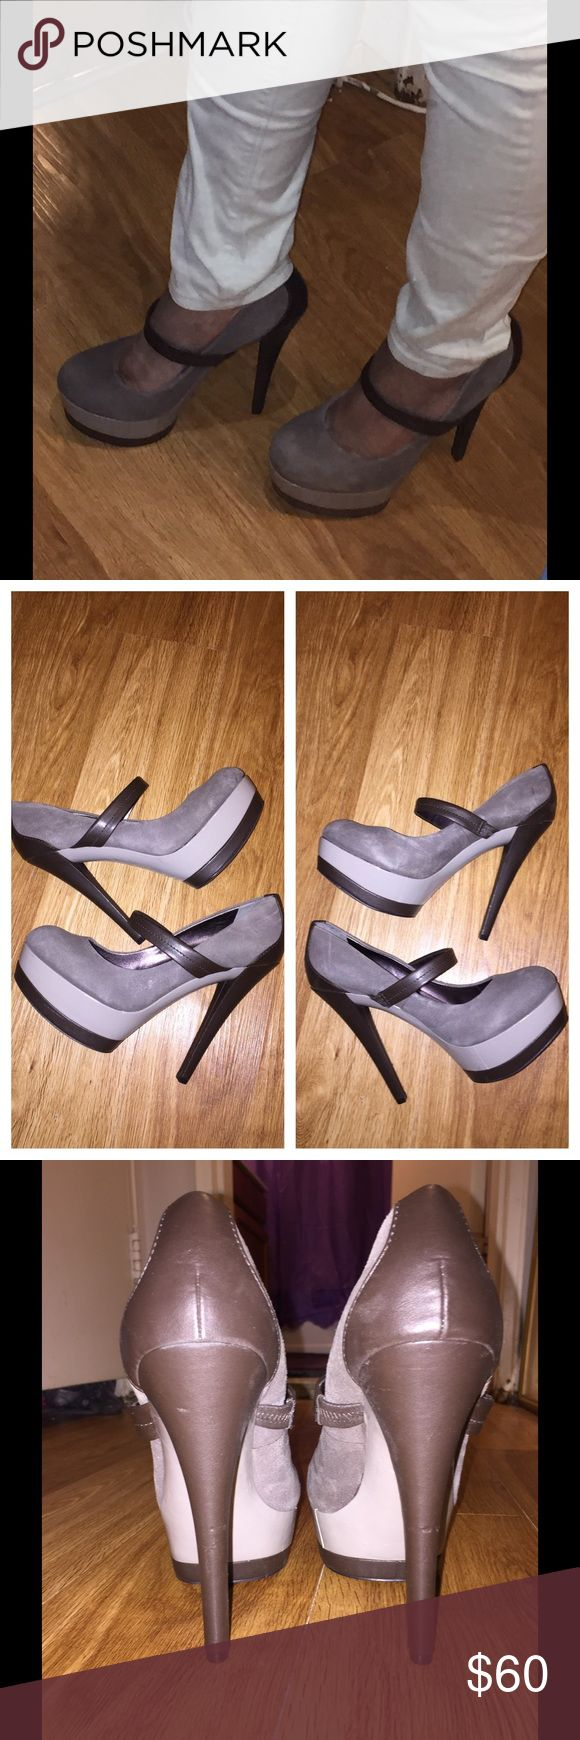 Jessica Simpson Mary Janes Cute heels for work or play. Heel height is 5.5 and platform is 1.75. Only worn once in an office setting. Jessica Simpson Shoes Heels